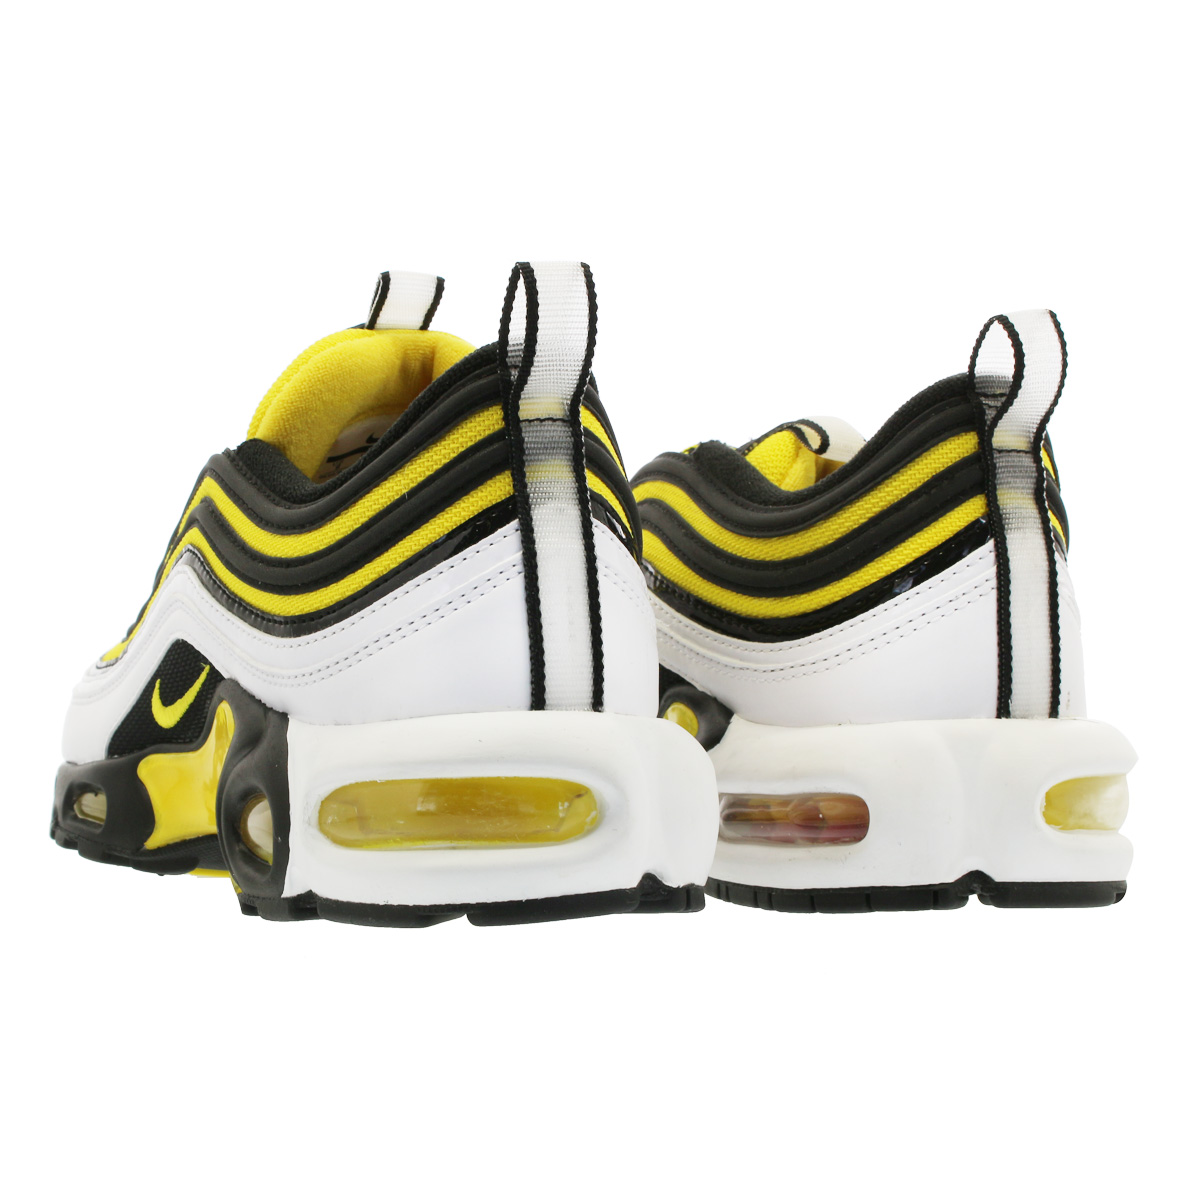 fb78e07502 SELECT SHOP LOWTEX: NIKE AIR MAX PLUS 97 Kie Ney AMAX +97 TOUR WHITE ...